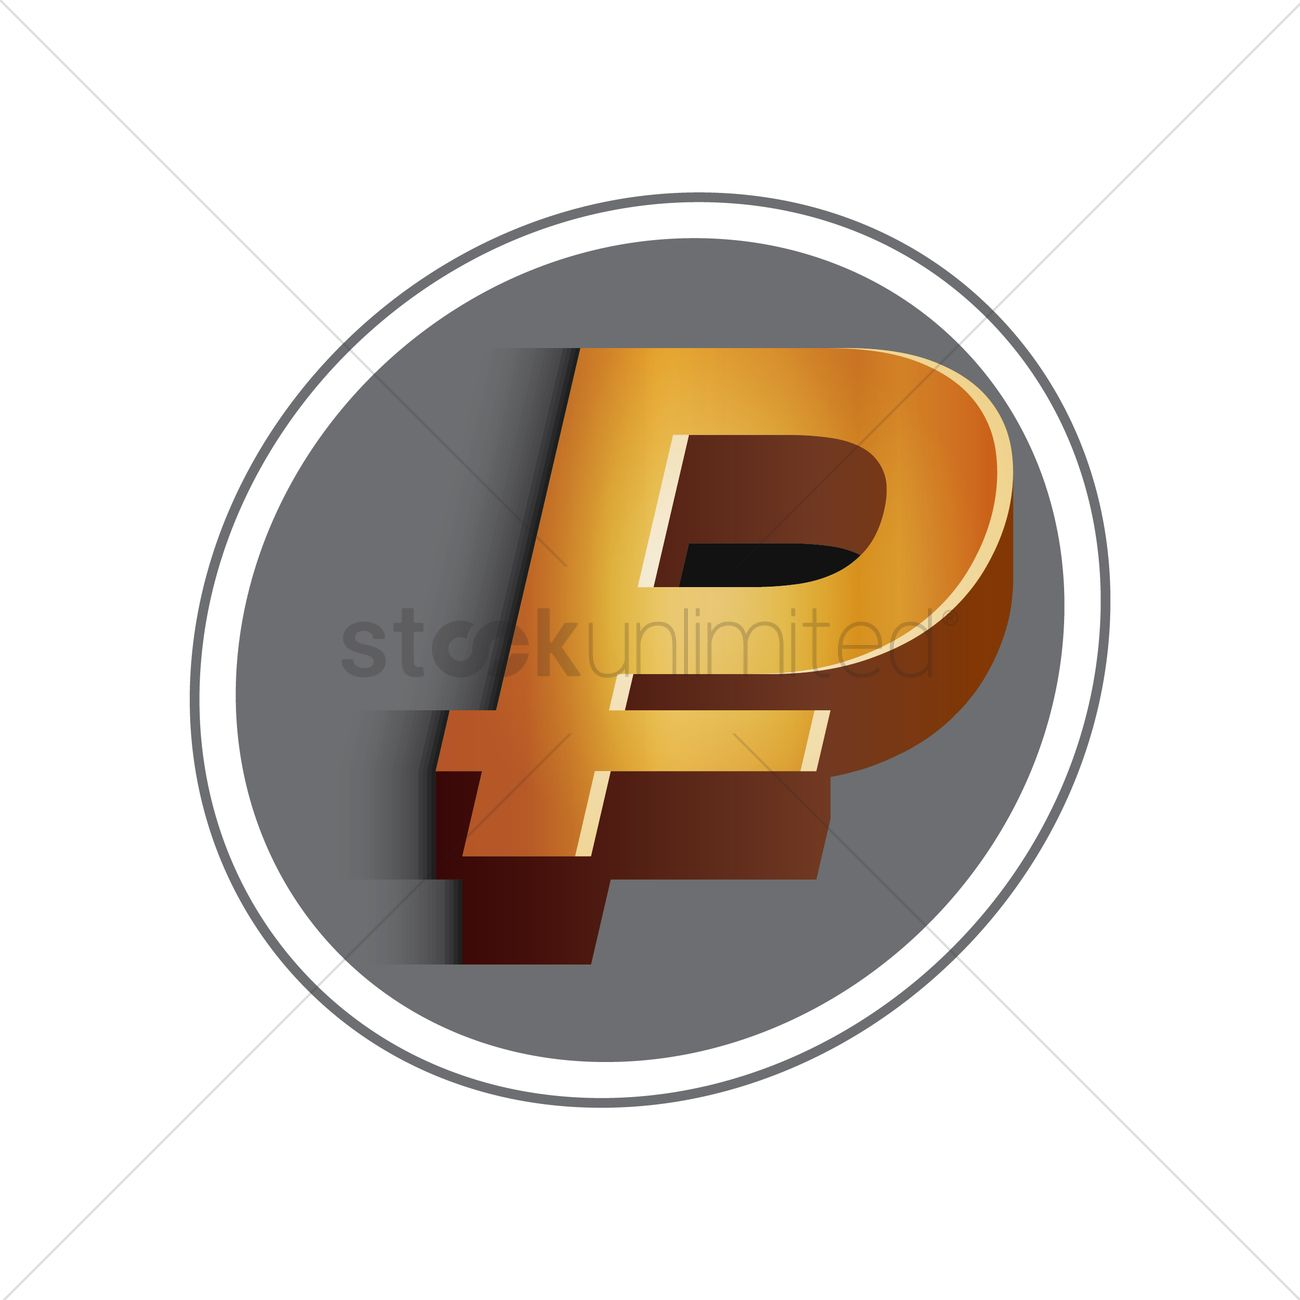 Philippine Peso Currency Symbol Vector Image 1611900 Stockunlimited